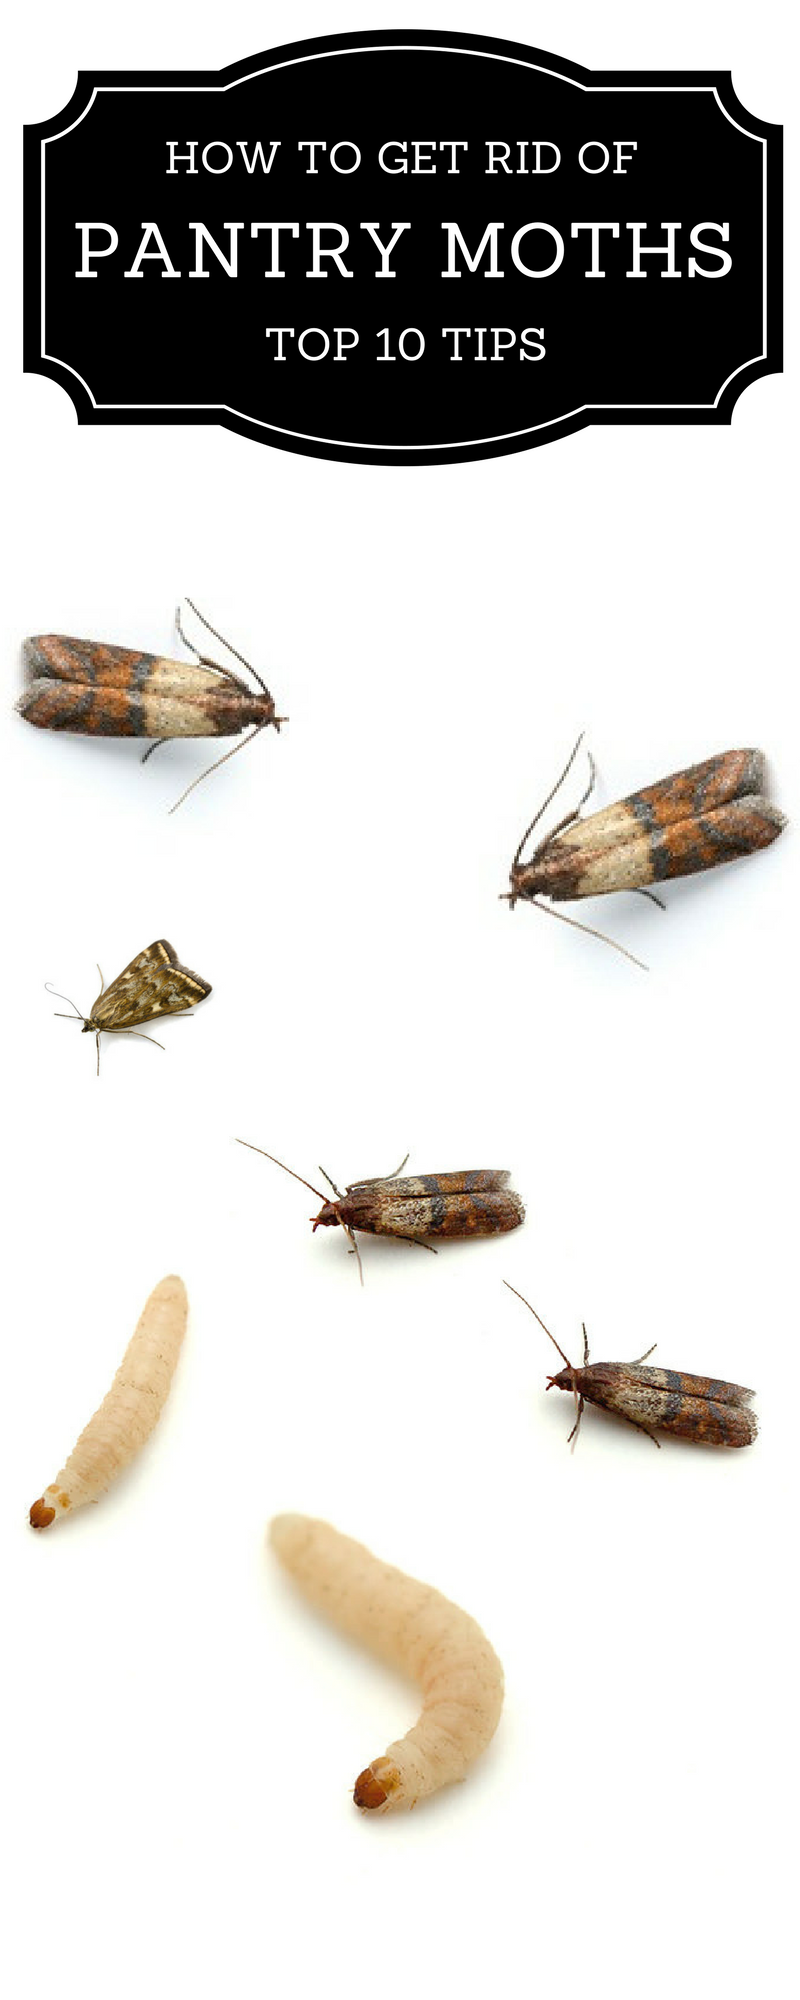 TOP 10 Tips On How To Get Rid Of Pantry Moths | Pantry ...